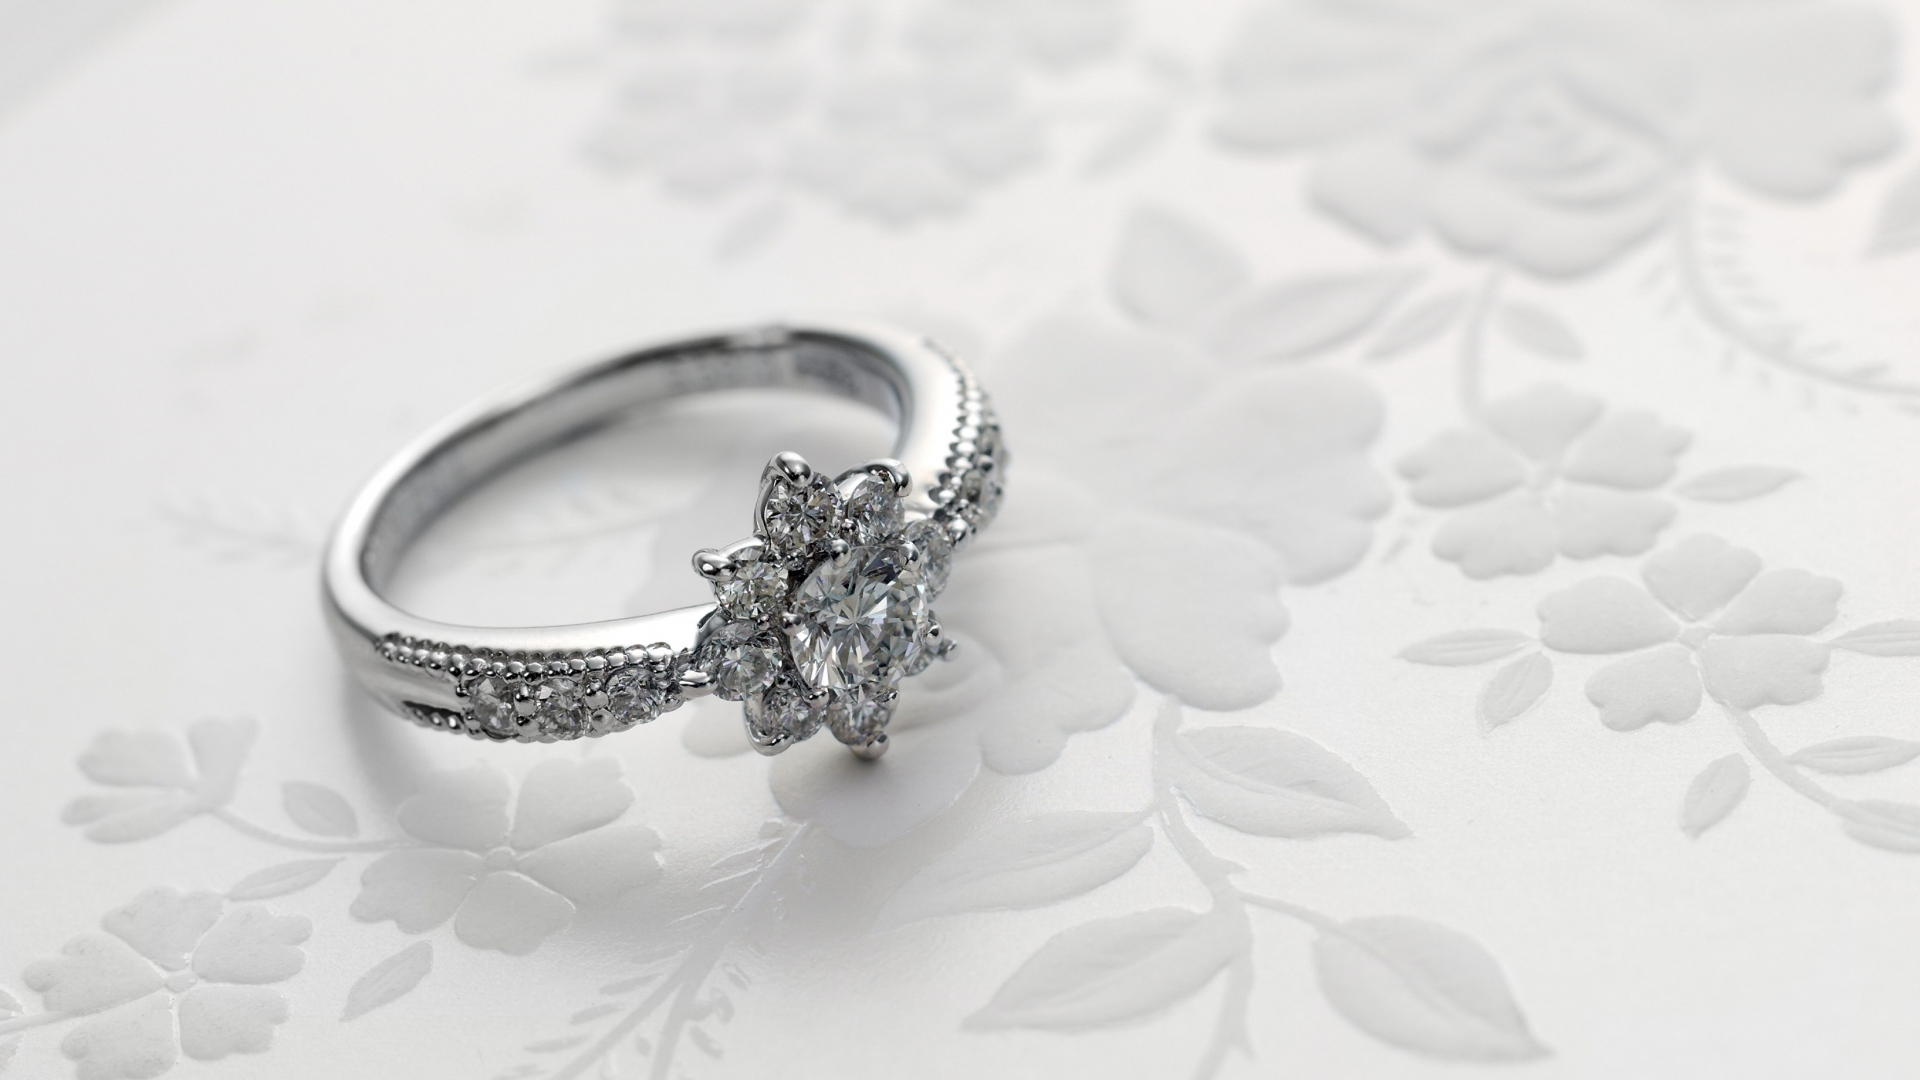 Diamond Ring Desktop Wallpaper 60237 1920x1080 px ~ HDWallSource.com